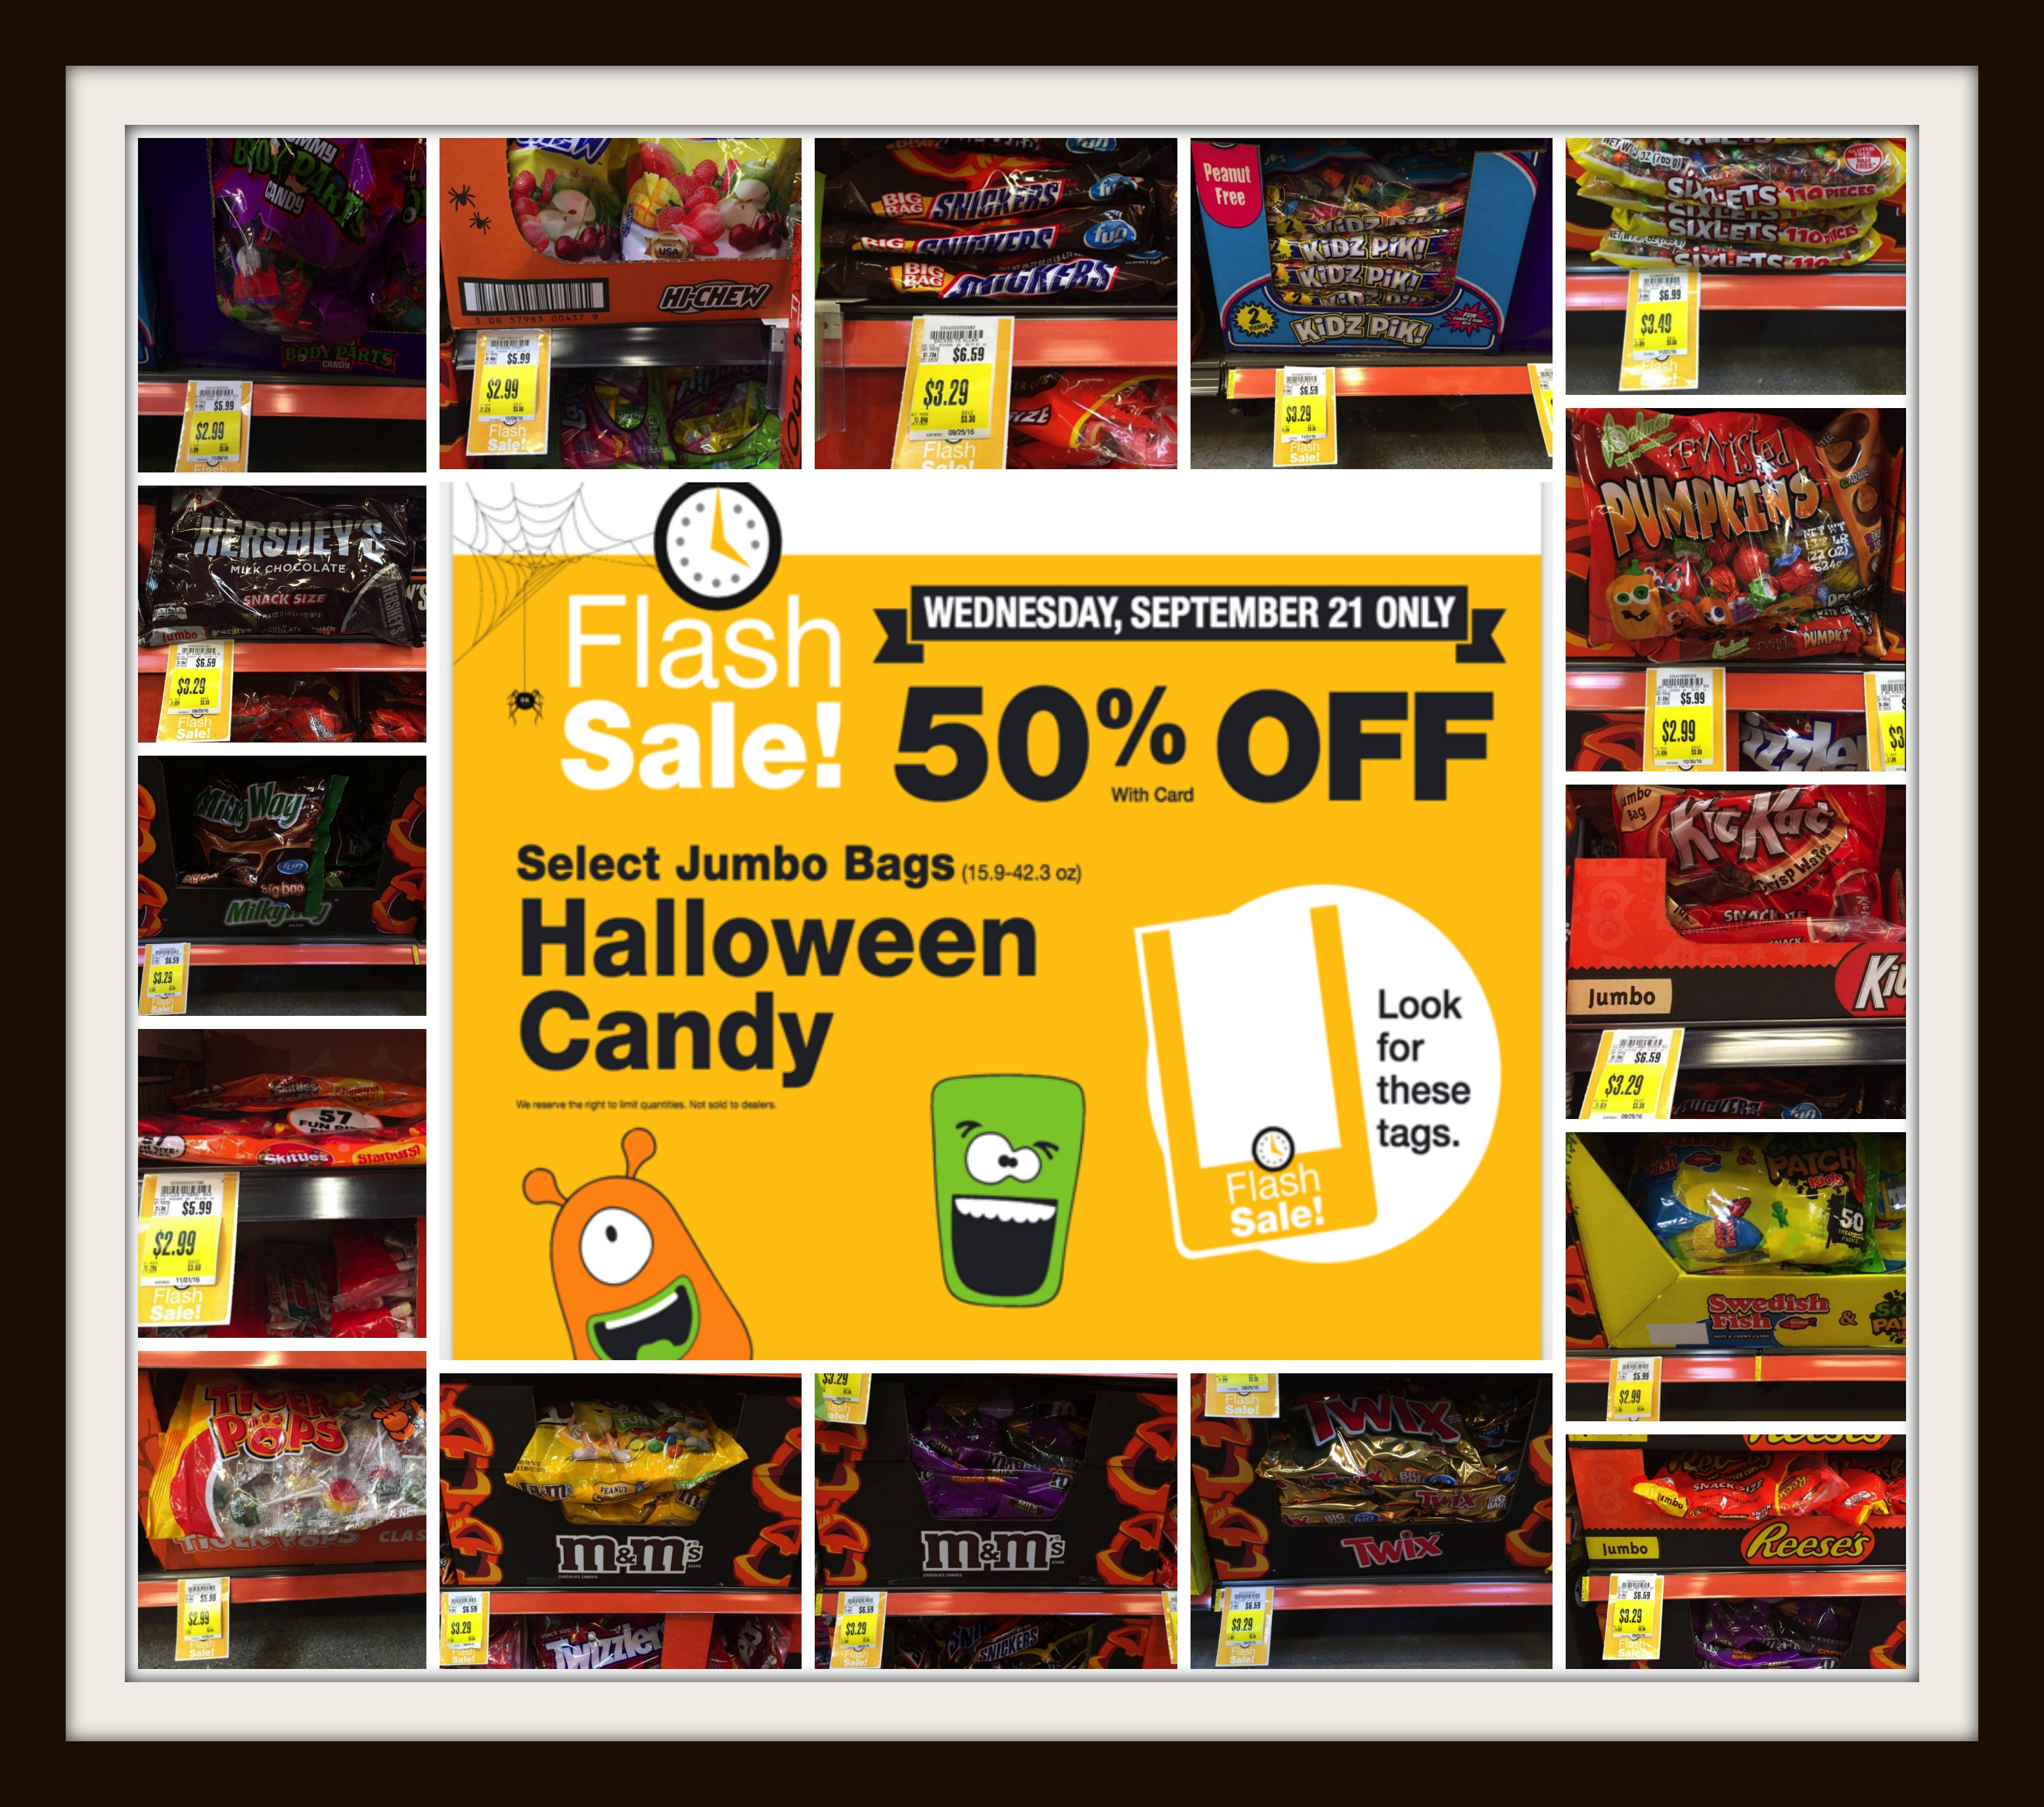 50% off halloween candy flash sale at kroger today (9/21) only